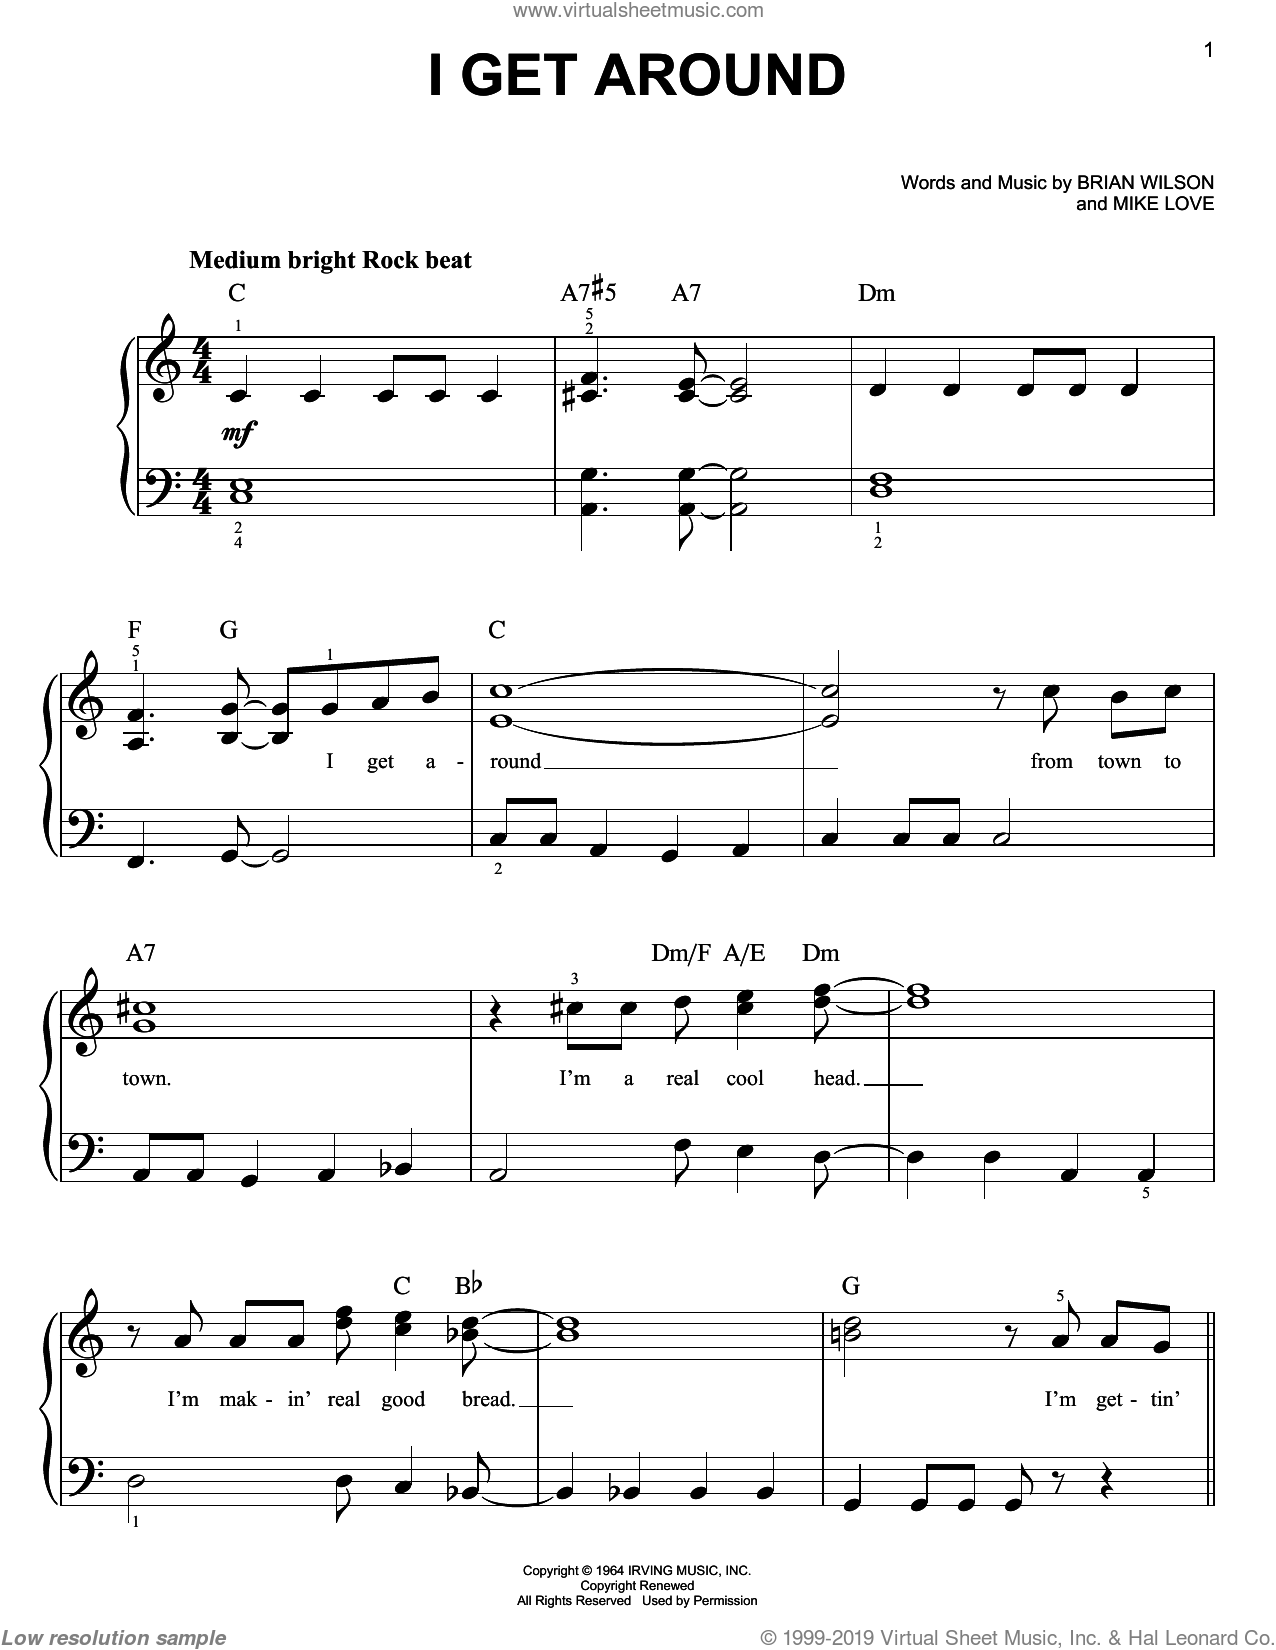 I Get Around sheet music for piano solo by Mike Love, The Beach Boys and Brian Wilson. Score Image Preview.